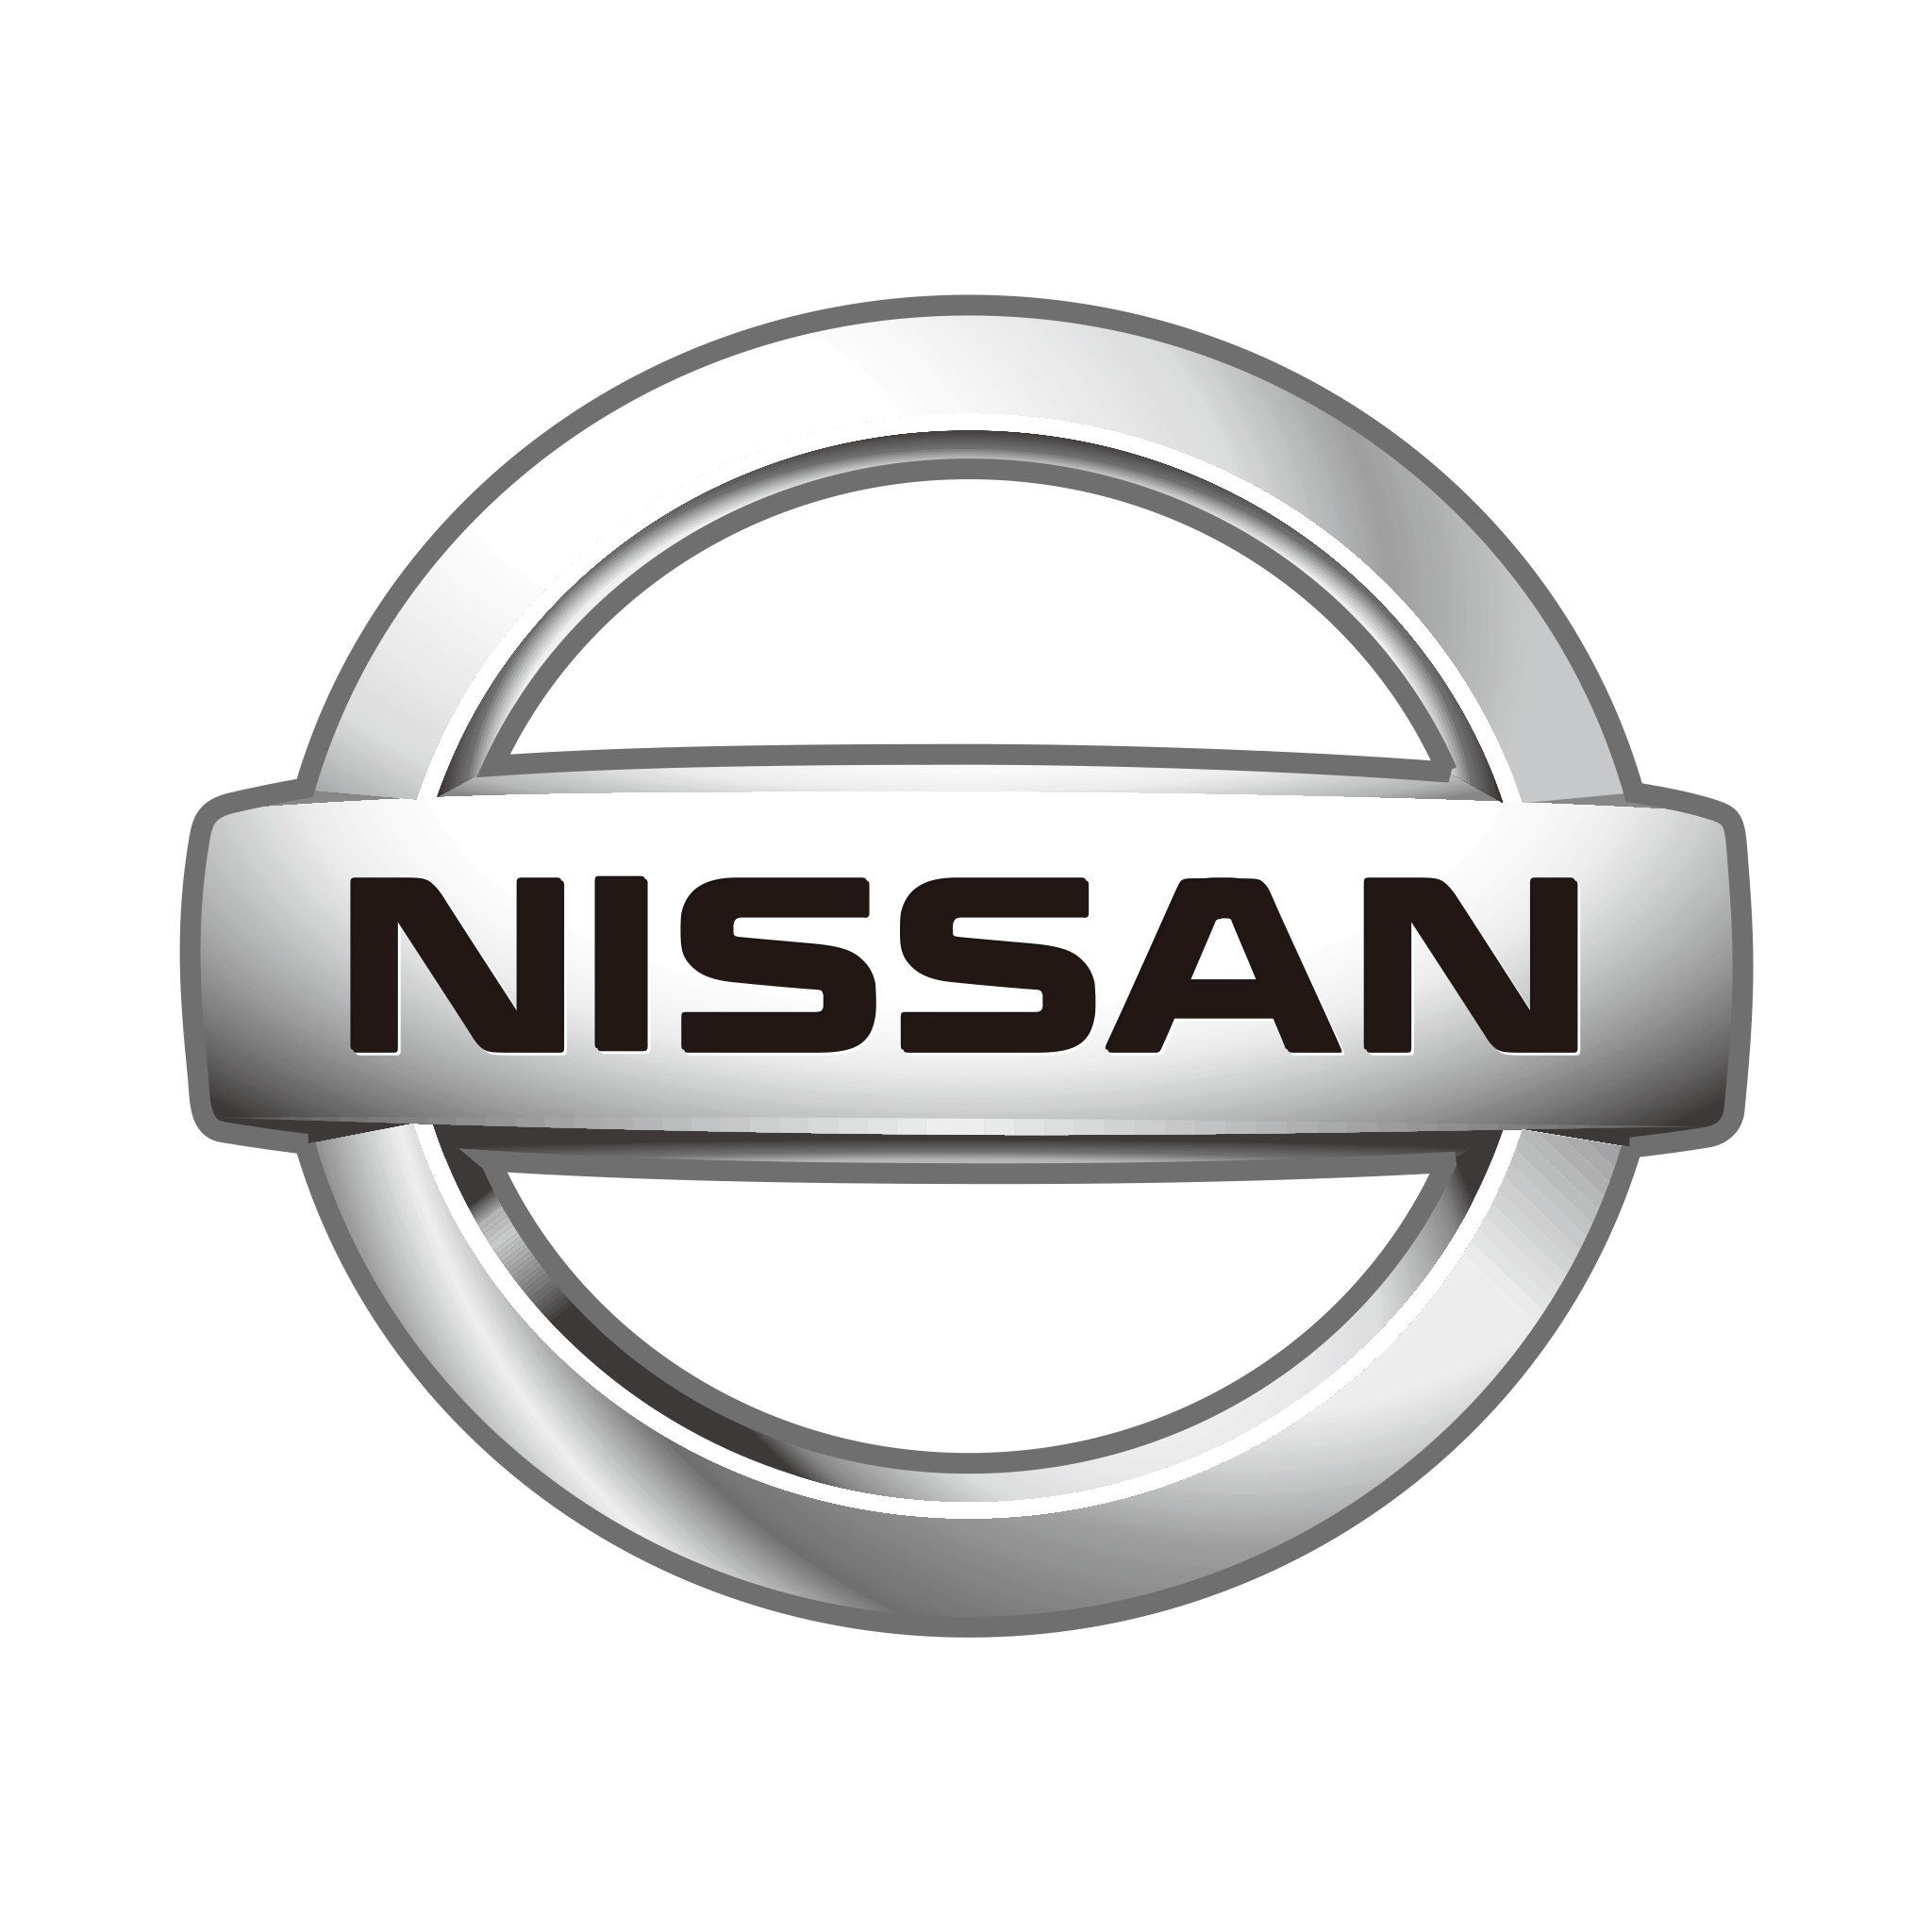 Nissan Logo Png Image Free Download Searchpng Pluspng.com - Nissan Logo PNG